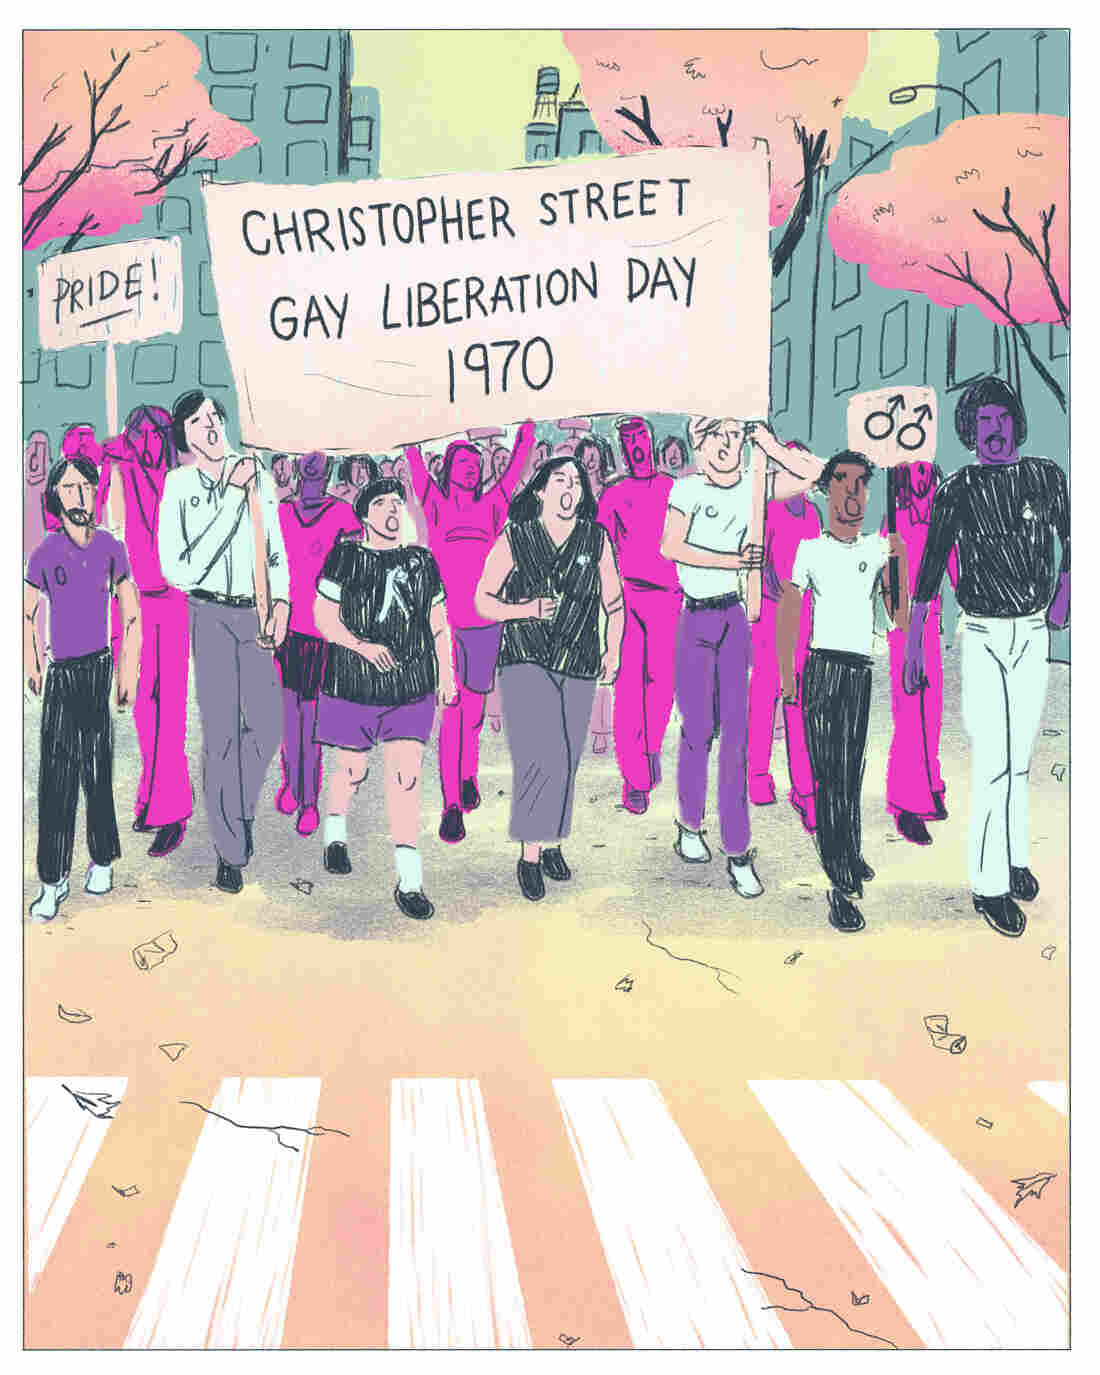 Stonewall spurred the first Pride parade.